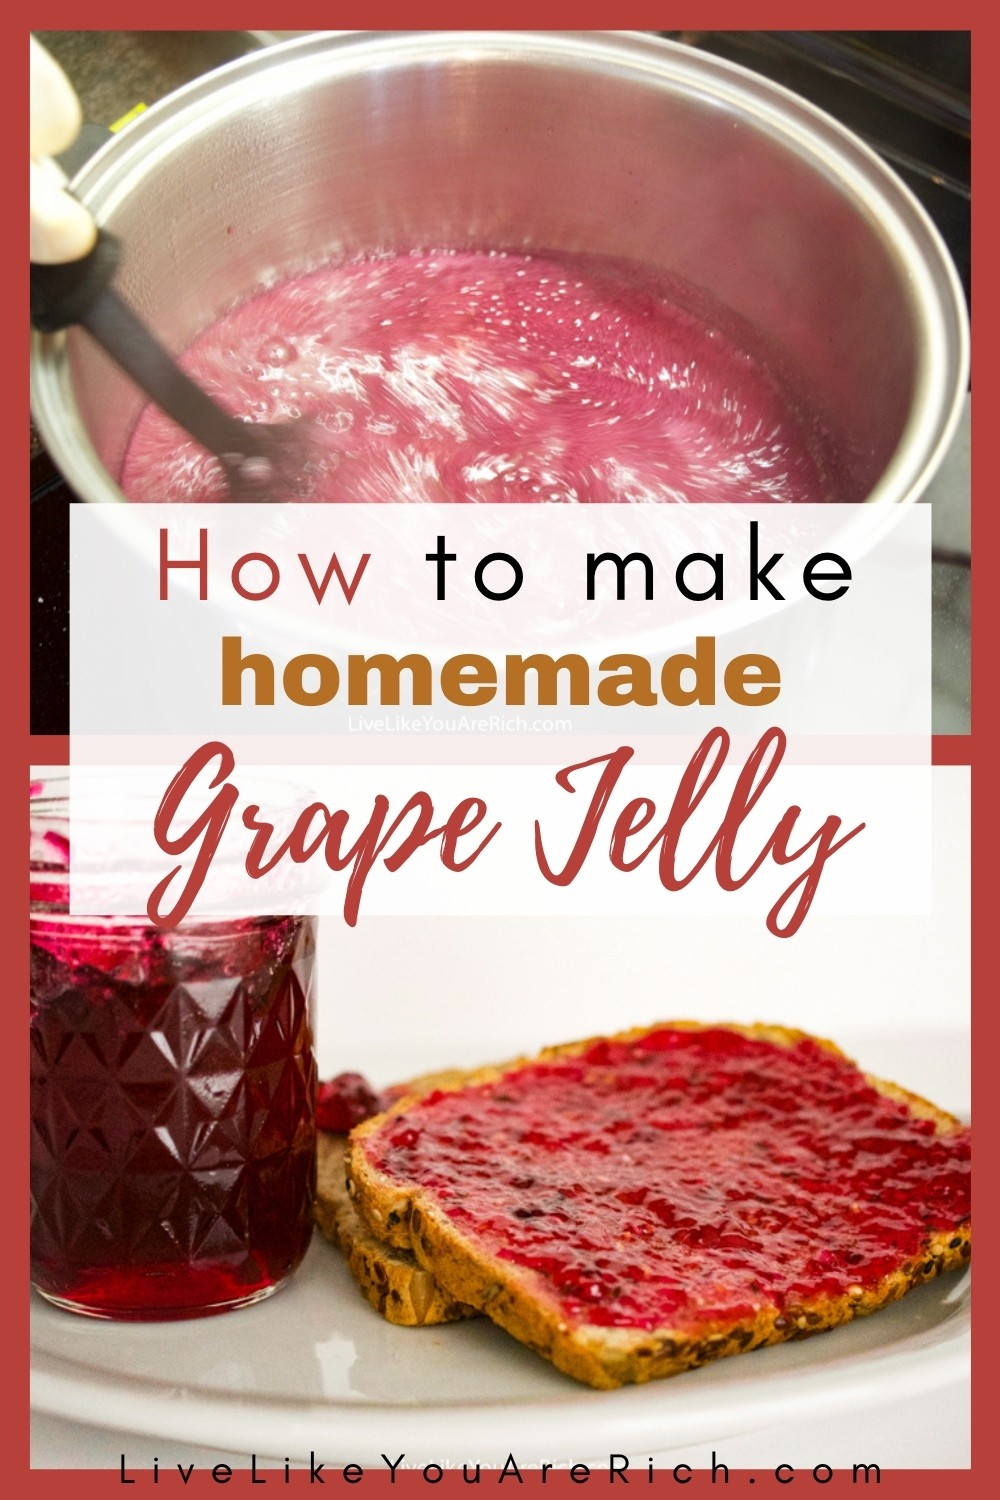 This is my favorite jelly! It is so flavorful, sweet, and delicious! It is easy and quick to make, especially considering the fact that the extras will store for up to a year. I'd highly recommend trying this fantastic recipe. #grapejelly